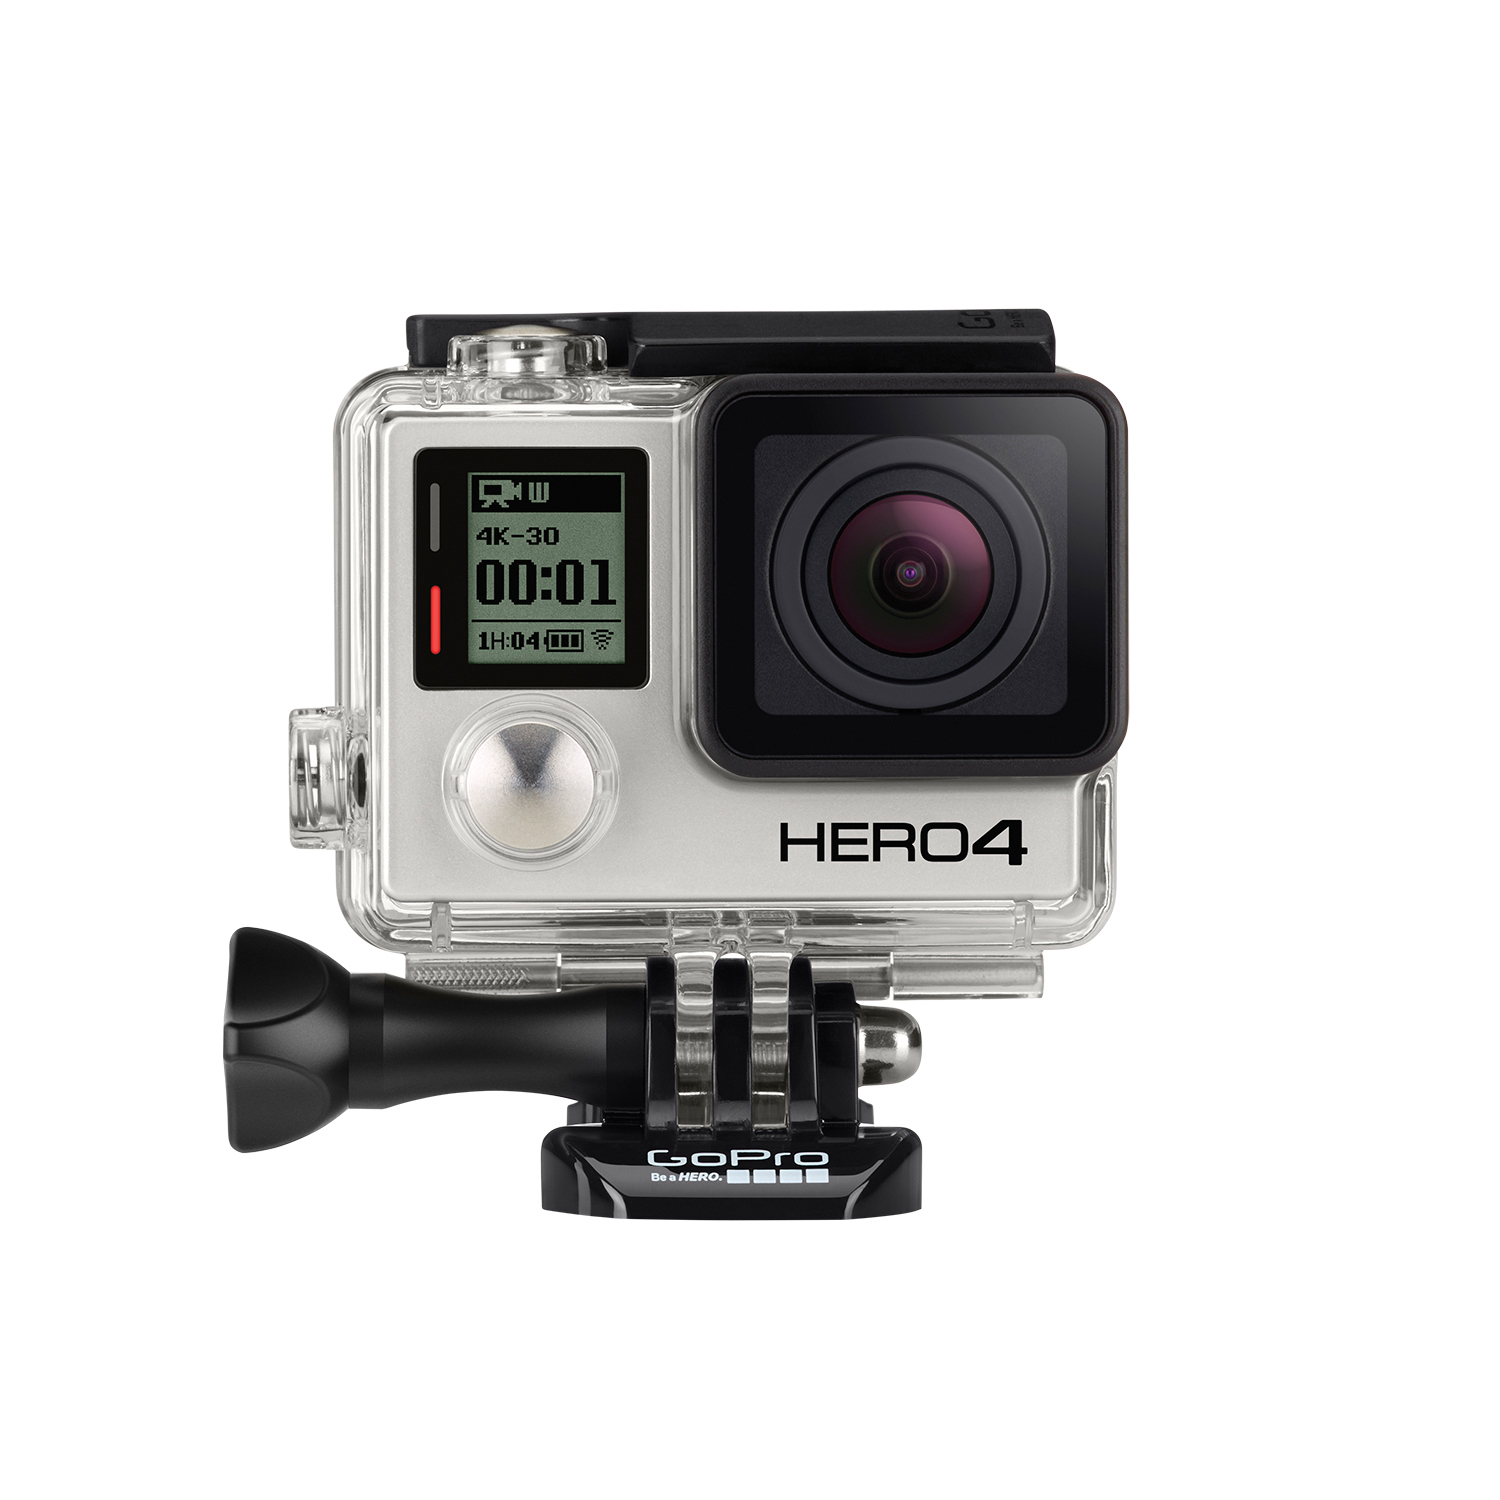 Best selling items on ebay reviews find out what sells best on ebay - Sell Gopro Cameras